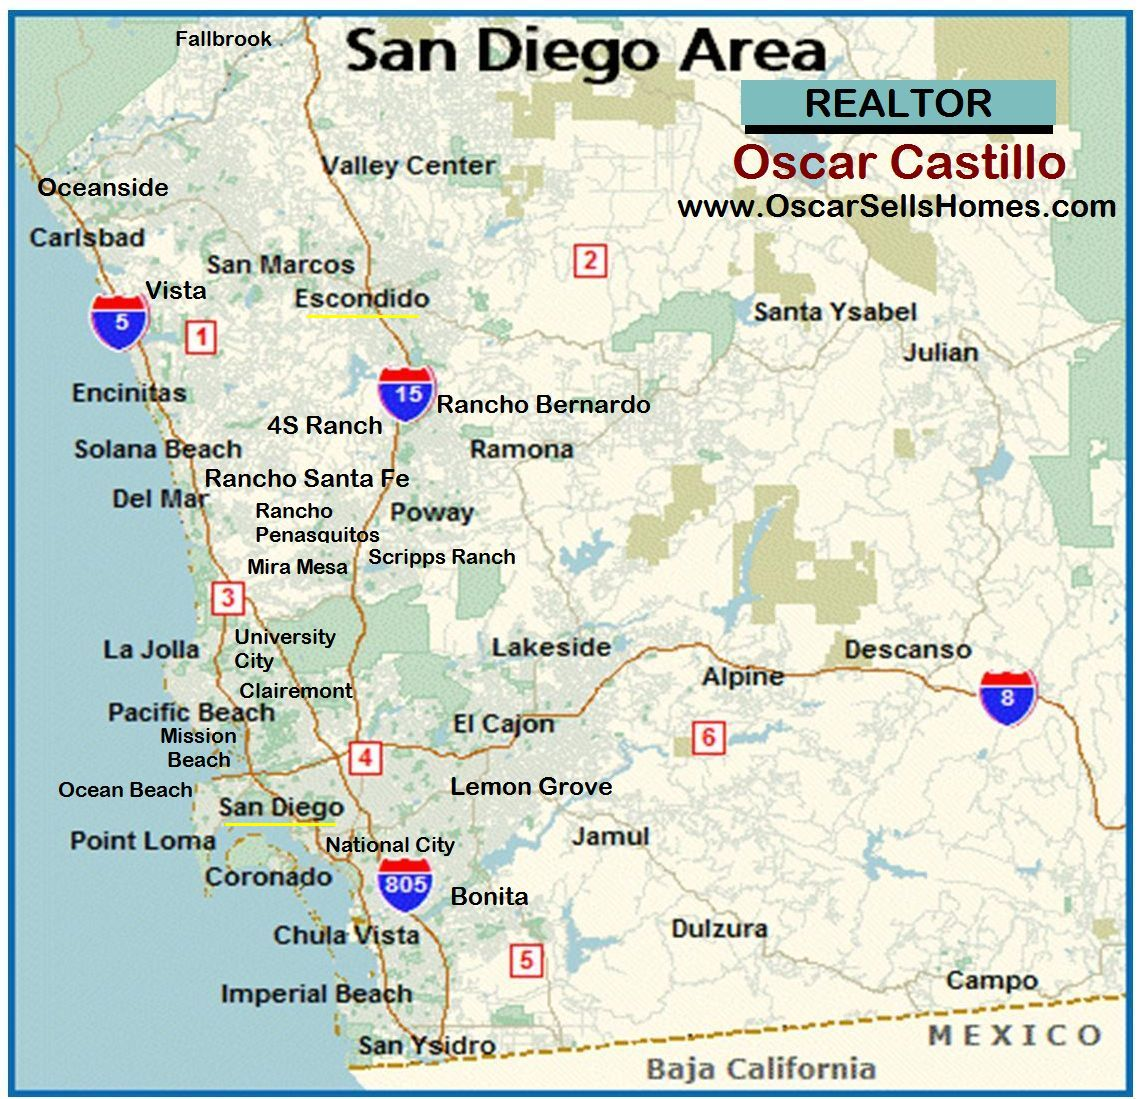 Relocation REALTOR San Diego - Oscar Castillo (858) 775-1057